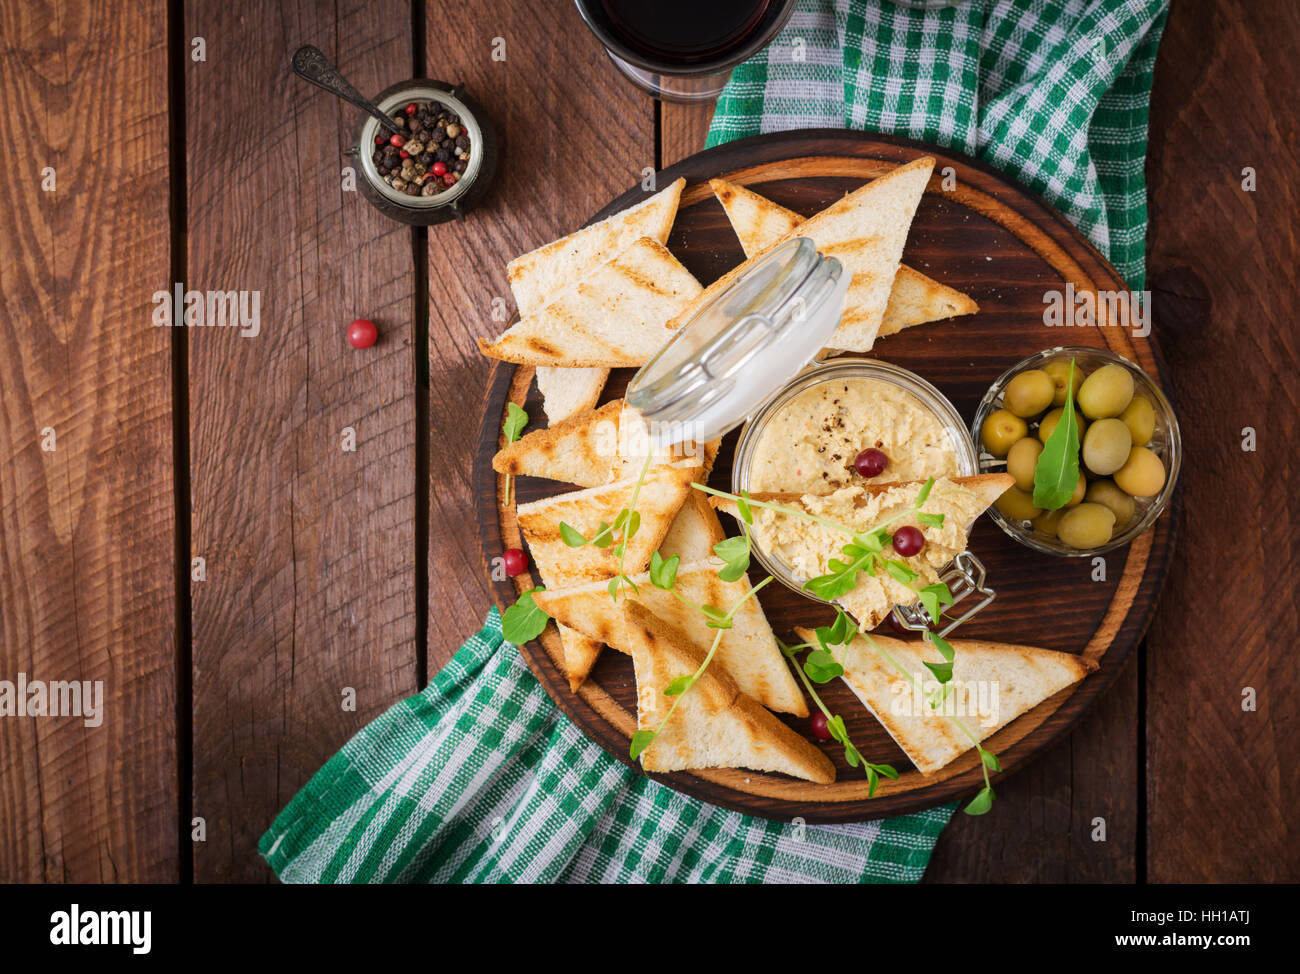 Pate Chicken - rillette, toast, olives and herbs on a wooden board. Flat lay. Top view - Stock Image